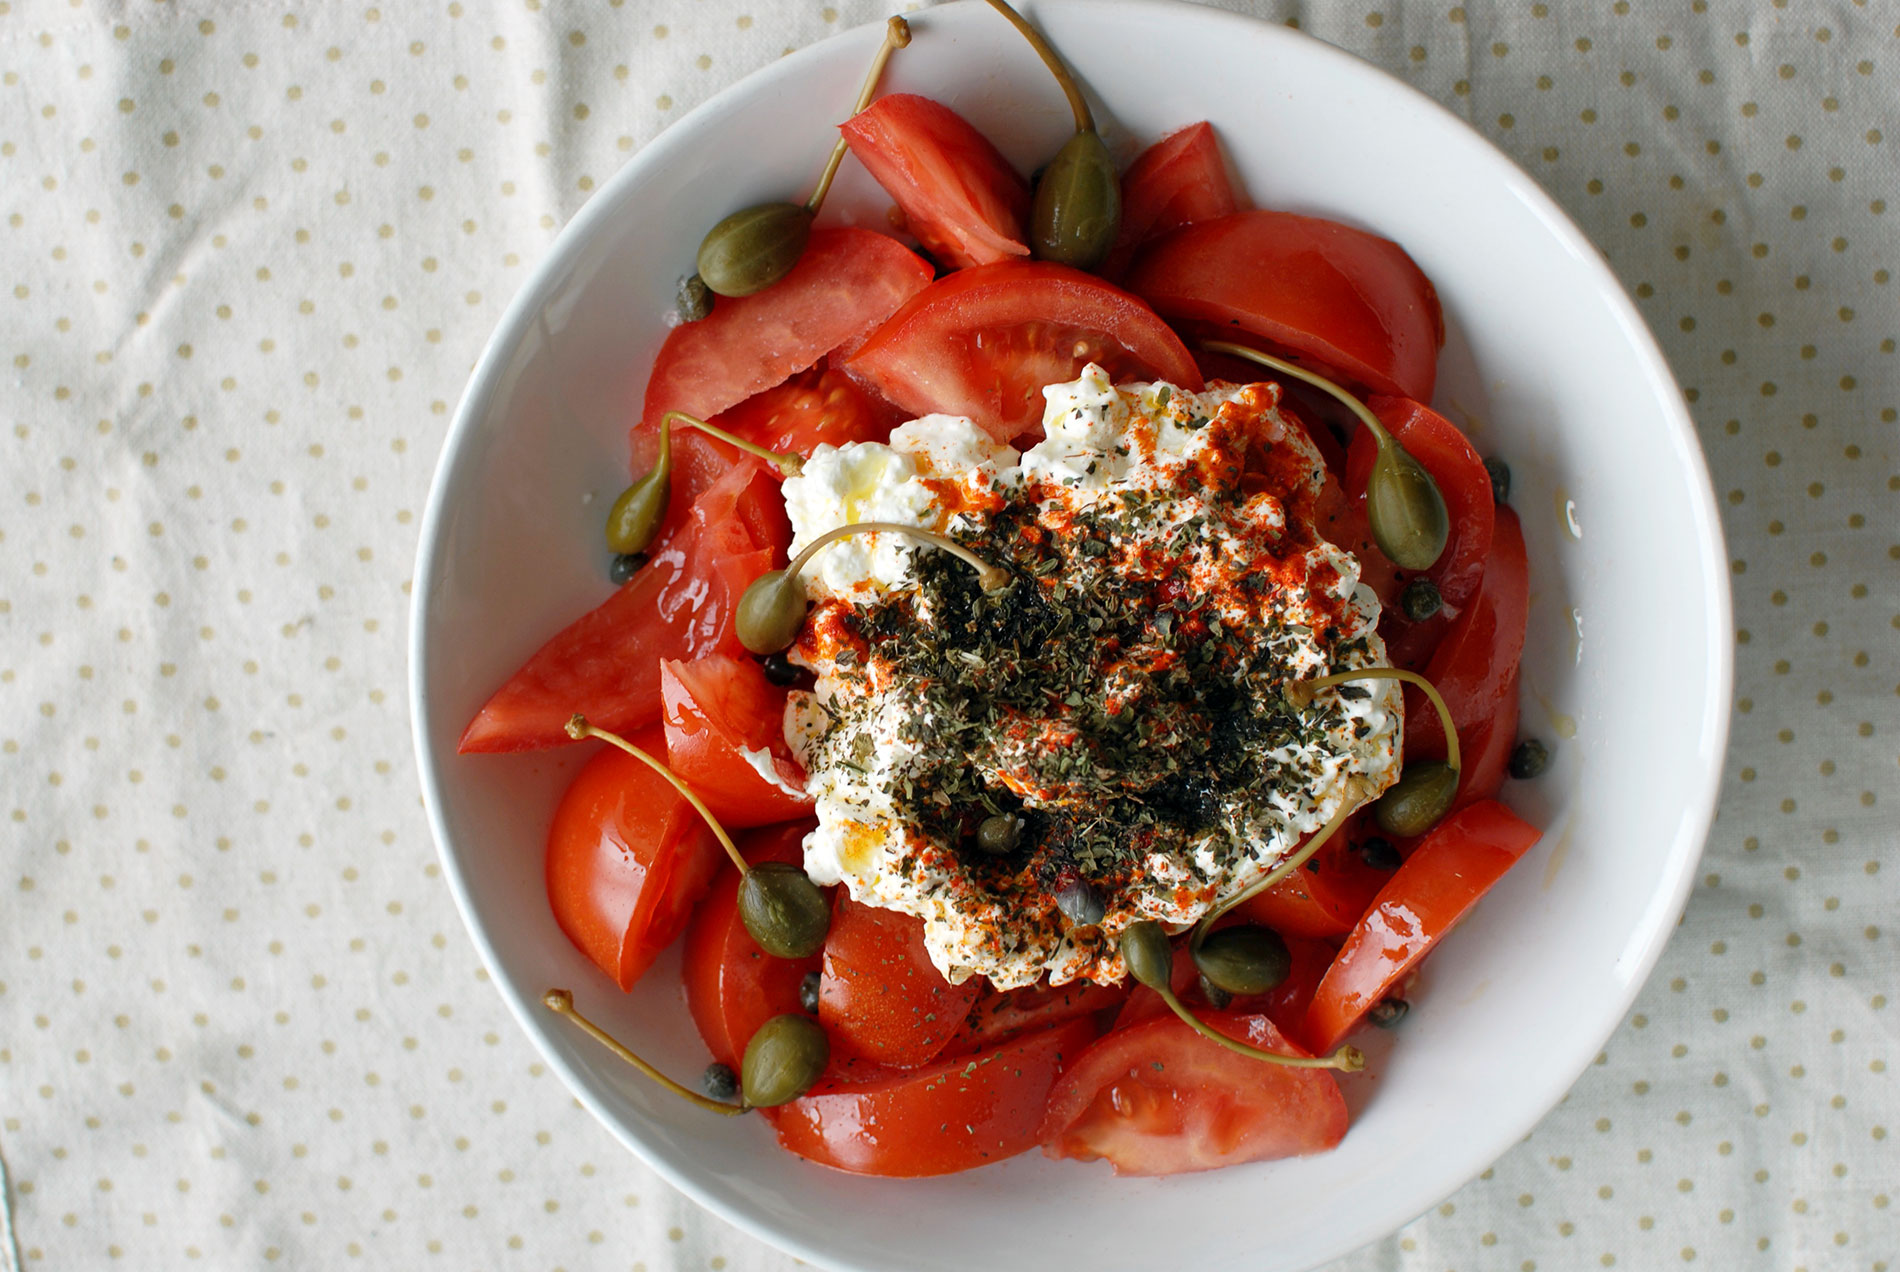 Tomato and cottage cheese salad,auronalurra, food blog, recipes